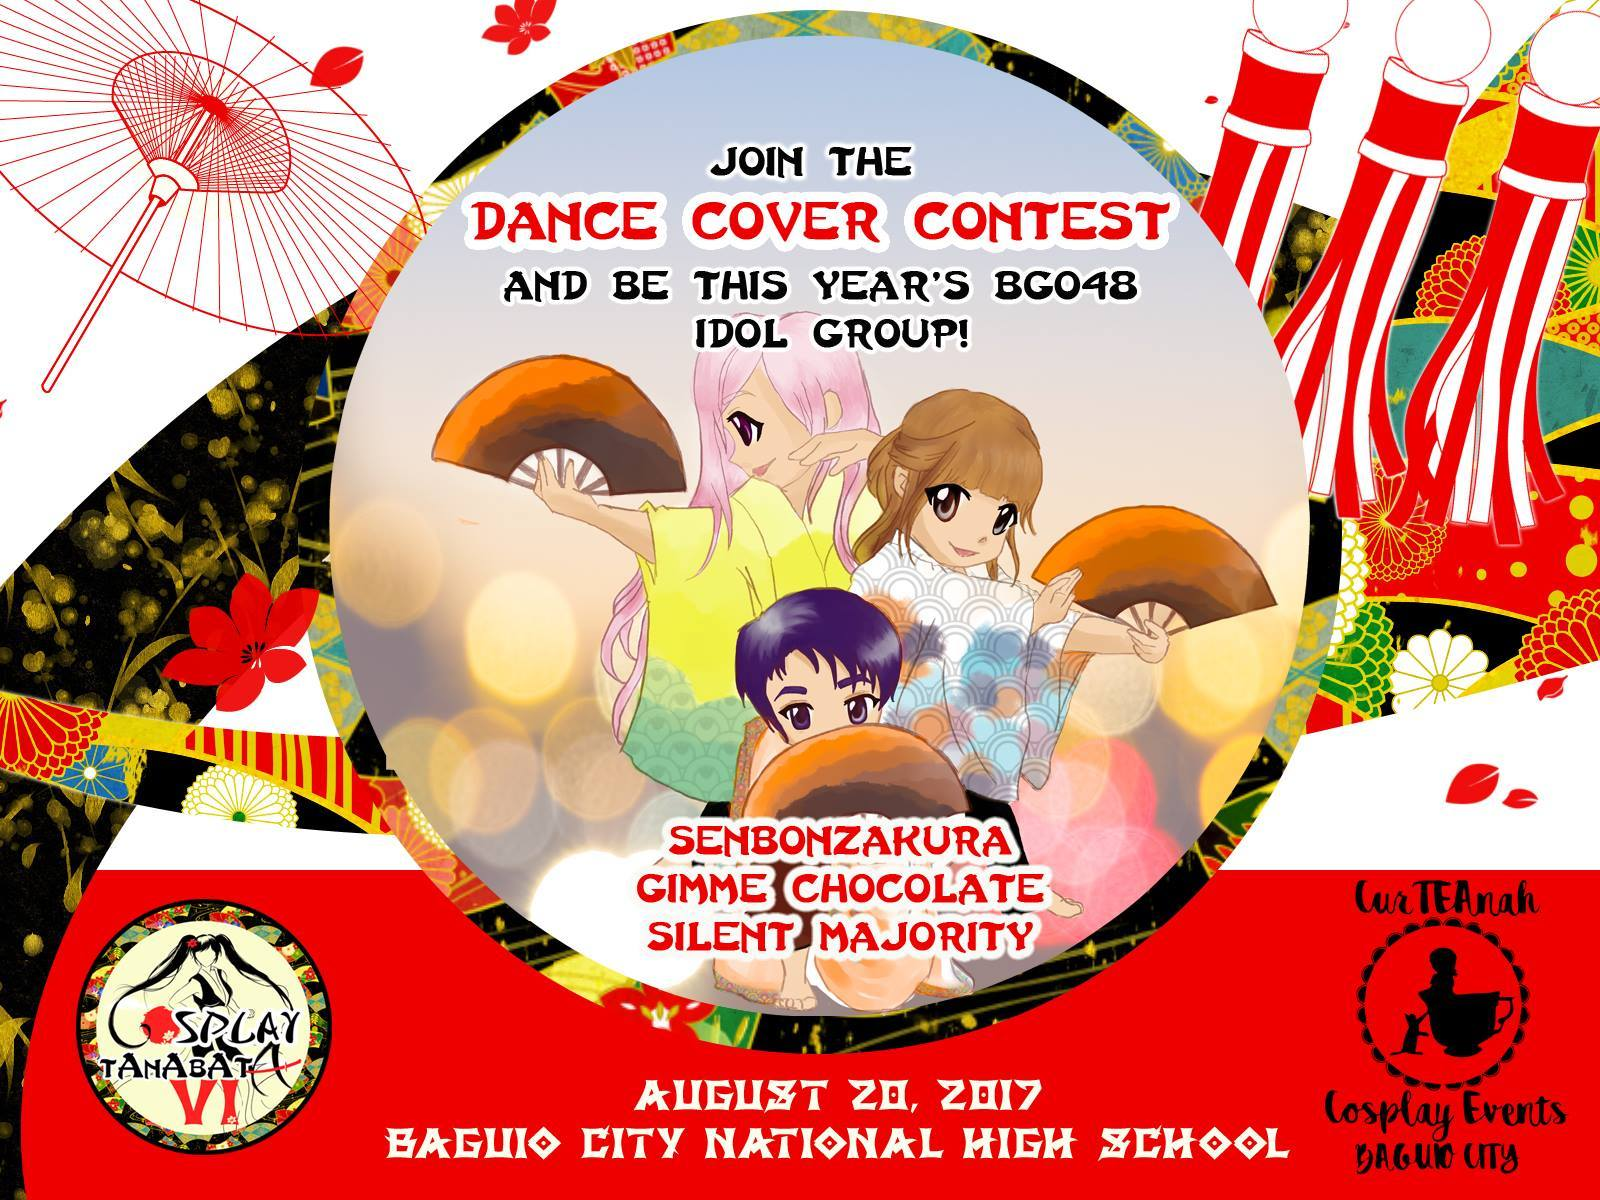 コスプレ・七夕祭6 2017 Cosplay Tanabata Festival 6 - Sunday, August 20 in Baguio city_a0109542_22231833.jpg